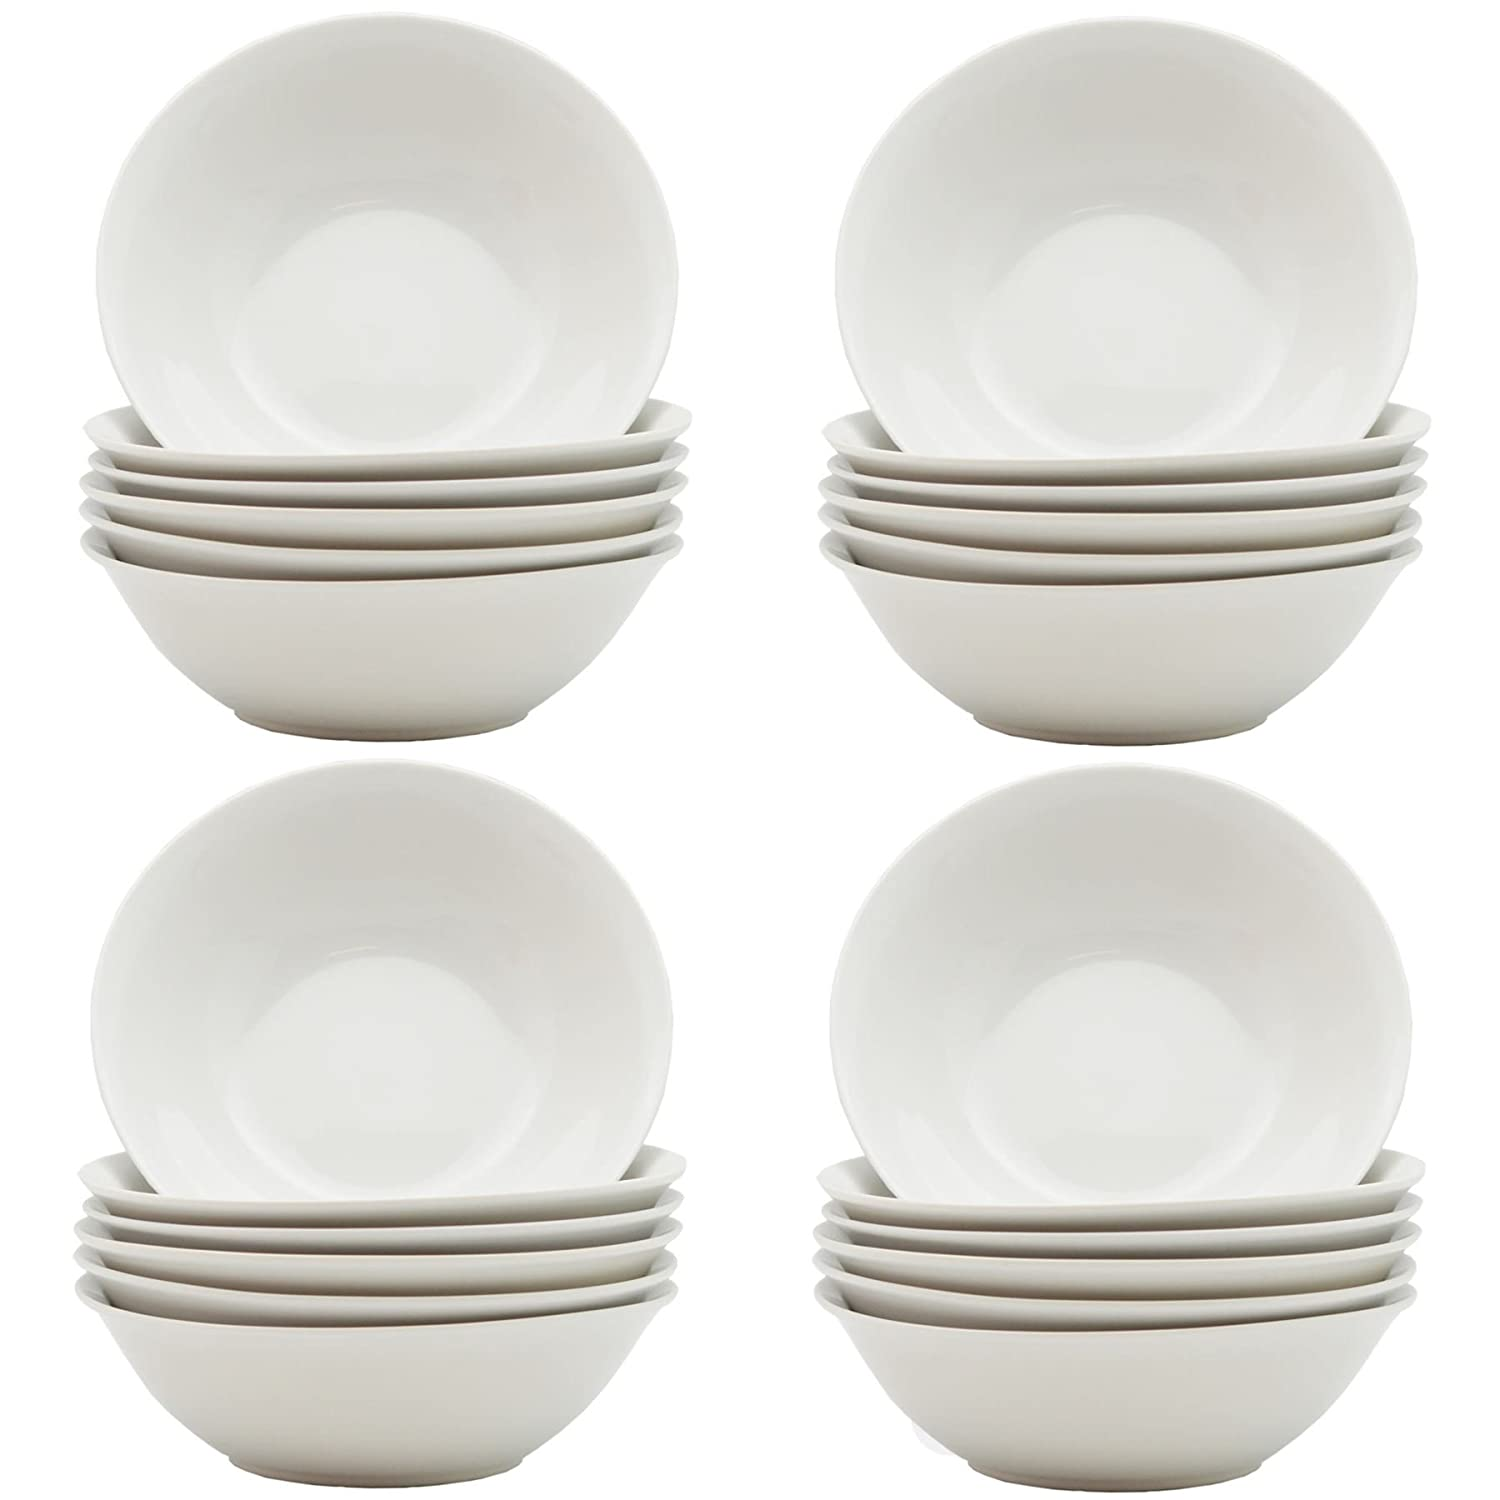 Argon Tableware White Oatmeal Cereal Breakfast Bowls - 178mm (7